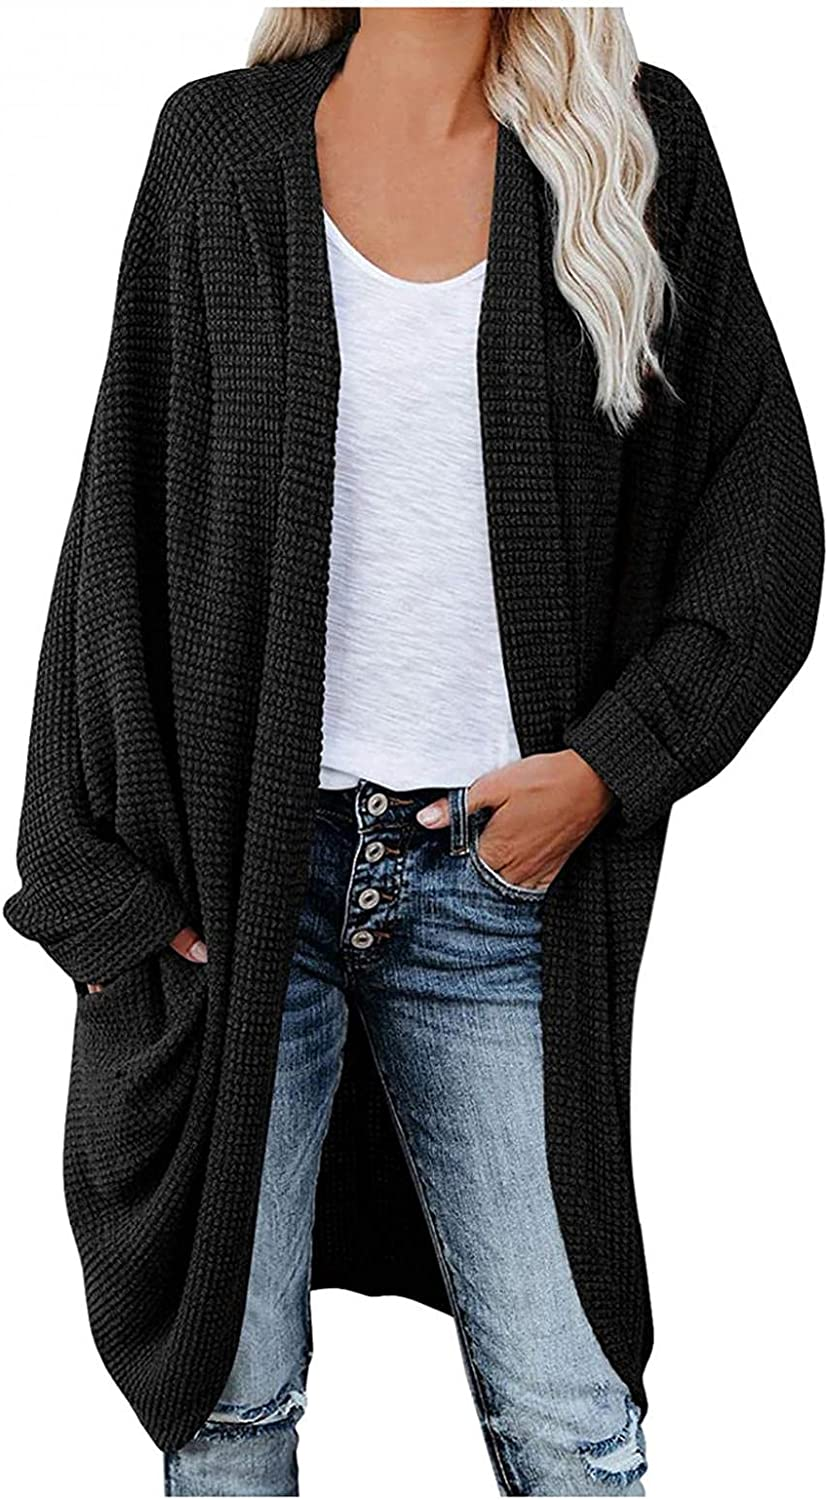 Eduavar Sweaters for Women Cardigan Long Sleeve Fall Knit Sweater Open Front Cardigan Tops Comfy Casual Loose Outerwear